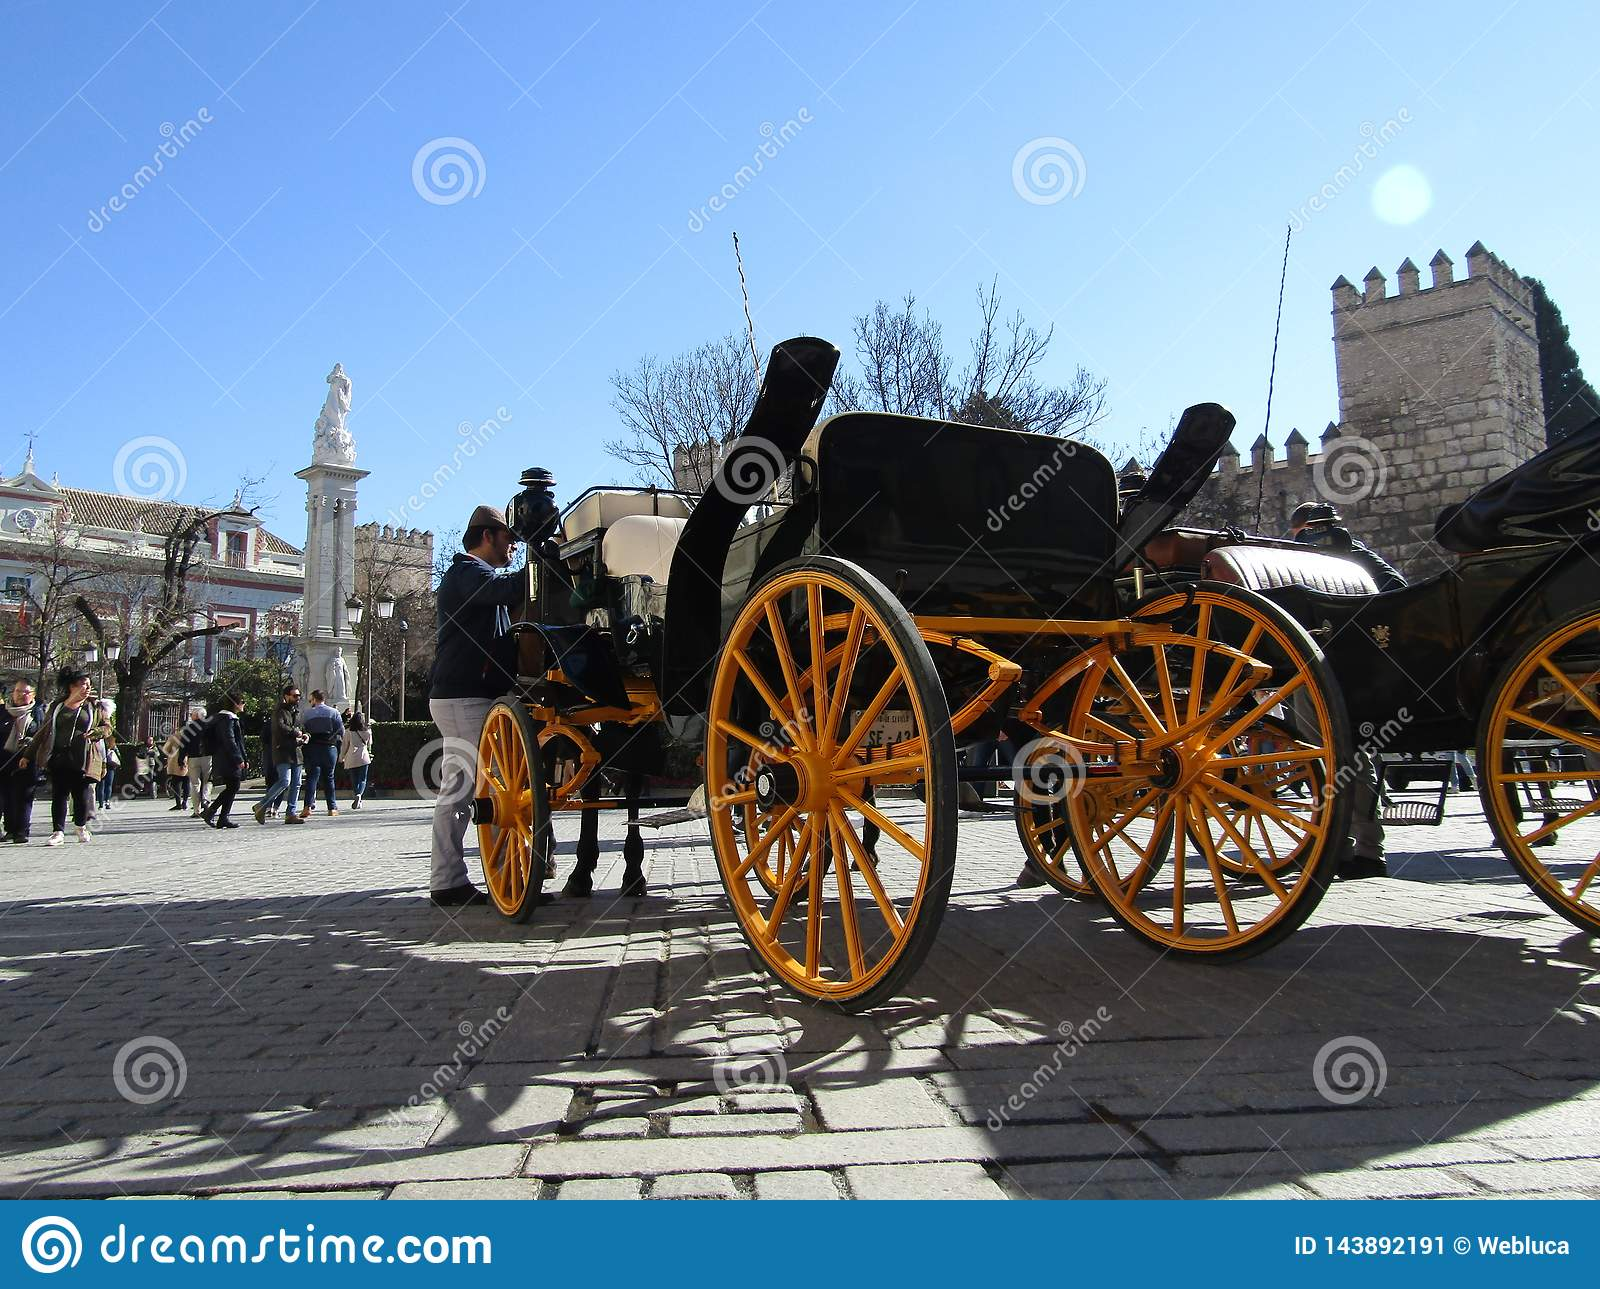 Horse carriages in Sevilla, Spain